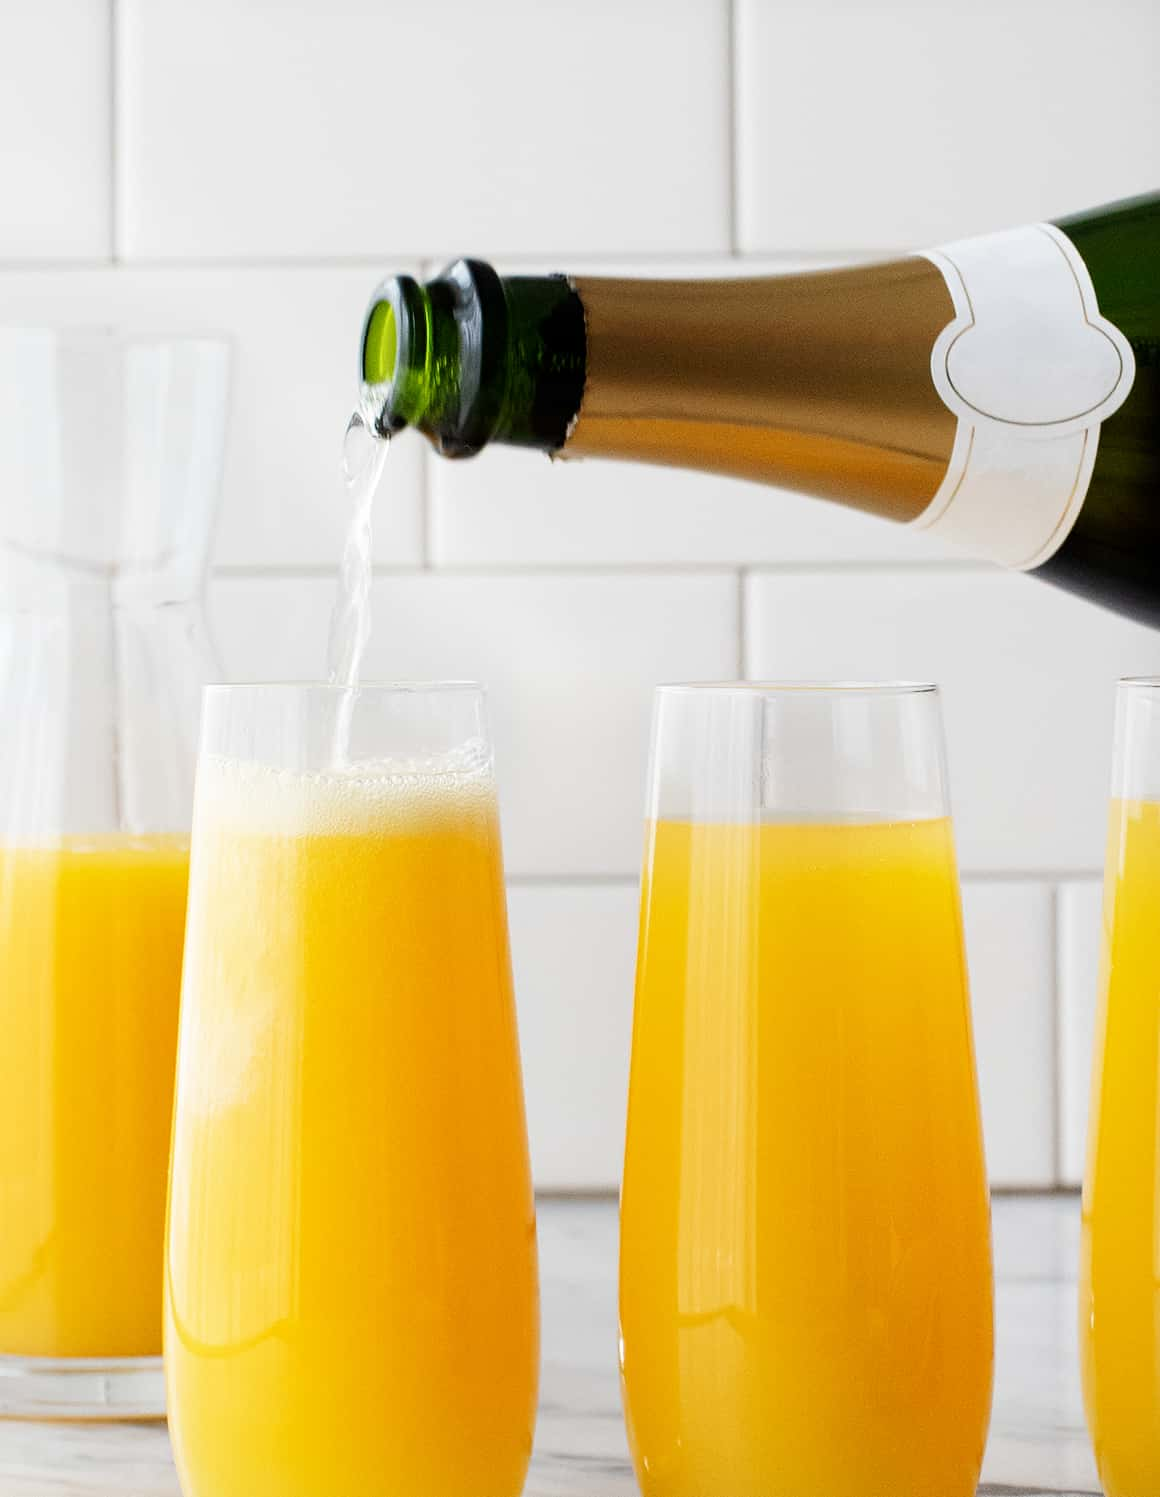 How to make mimosas